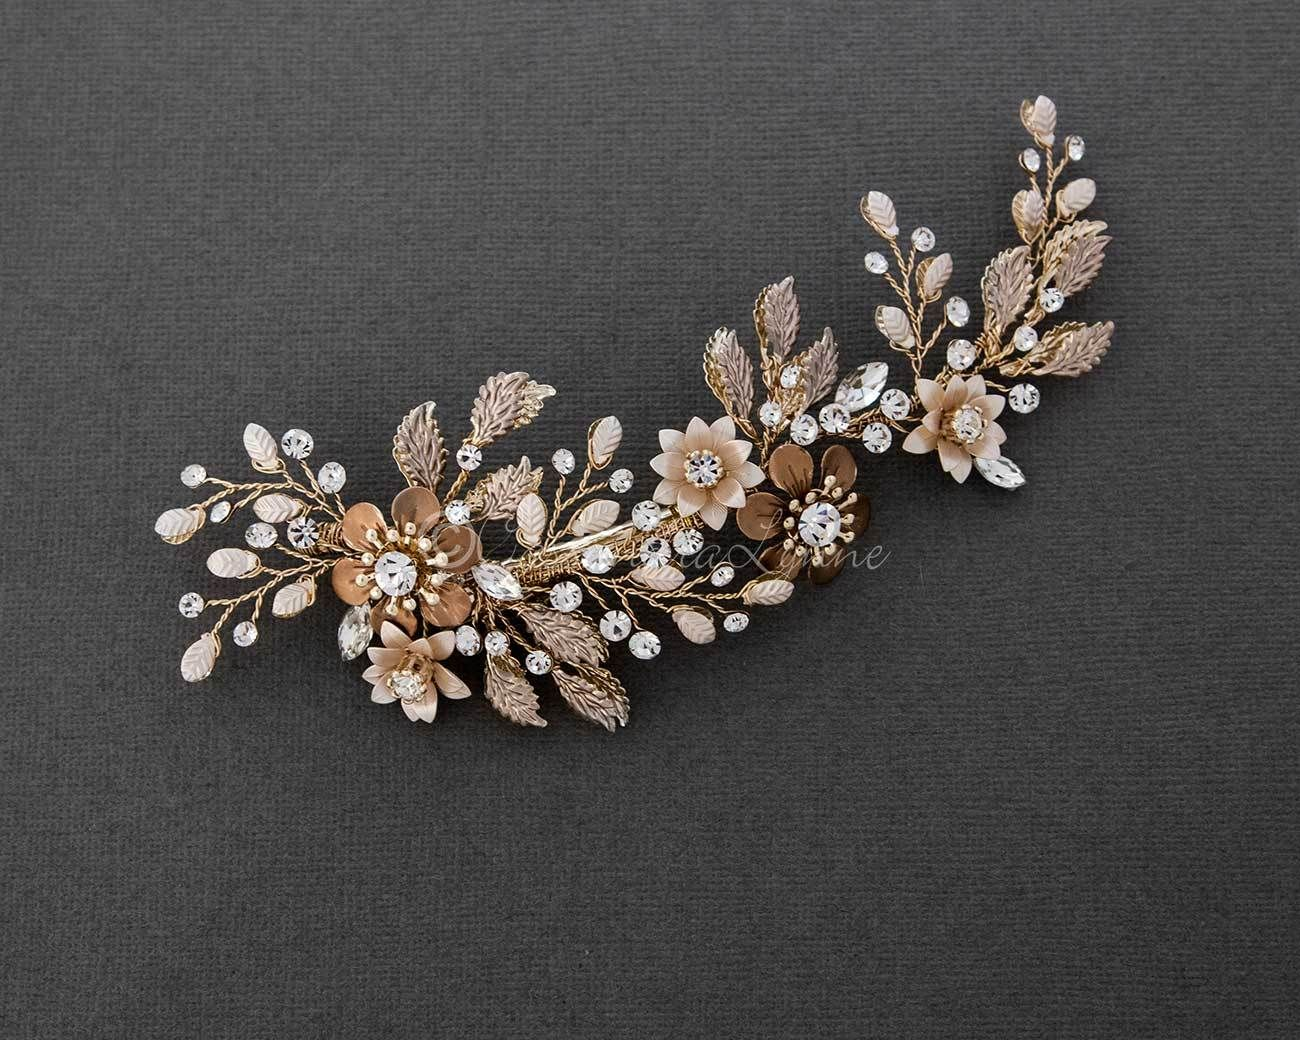 Gold Flower Wedding Hair Clip Gold Bridal Hair Accessories Gold Hair Accessories Wedding Hair Clips